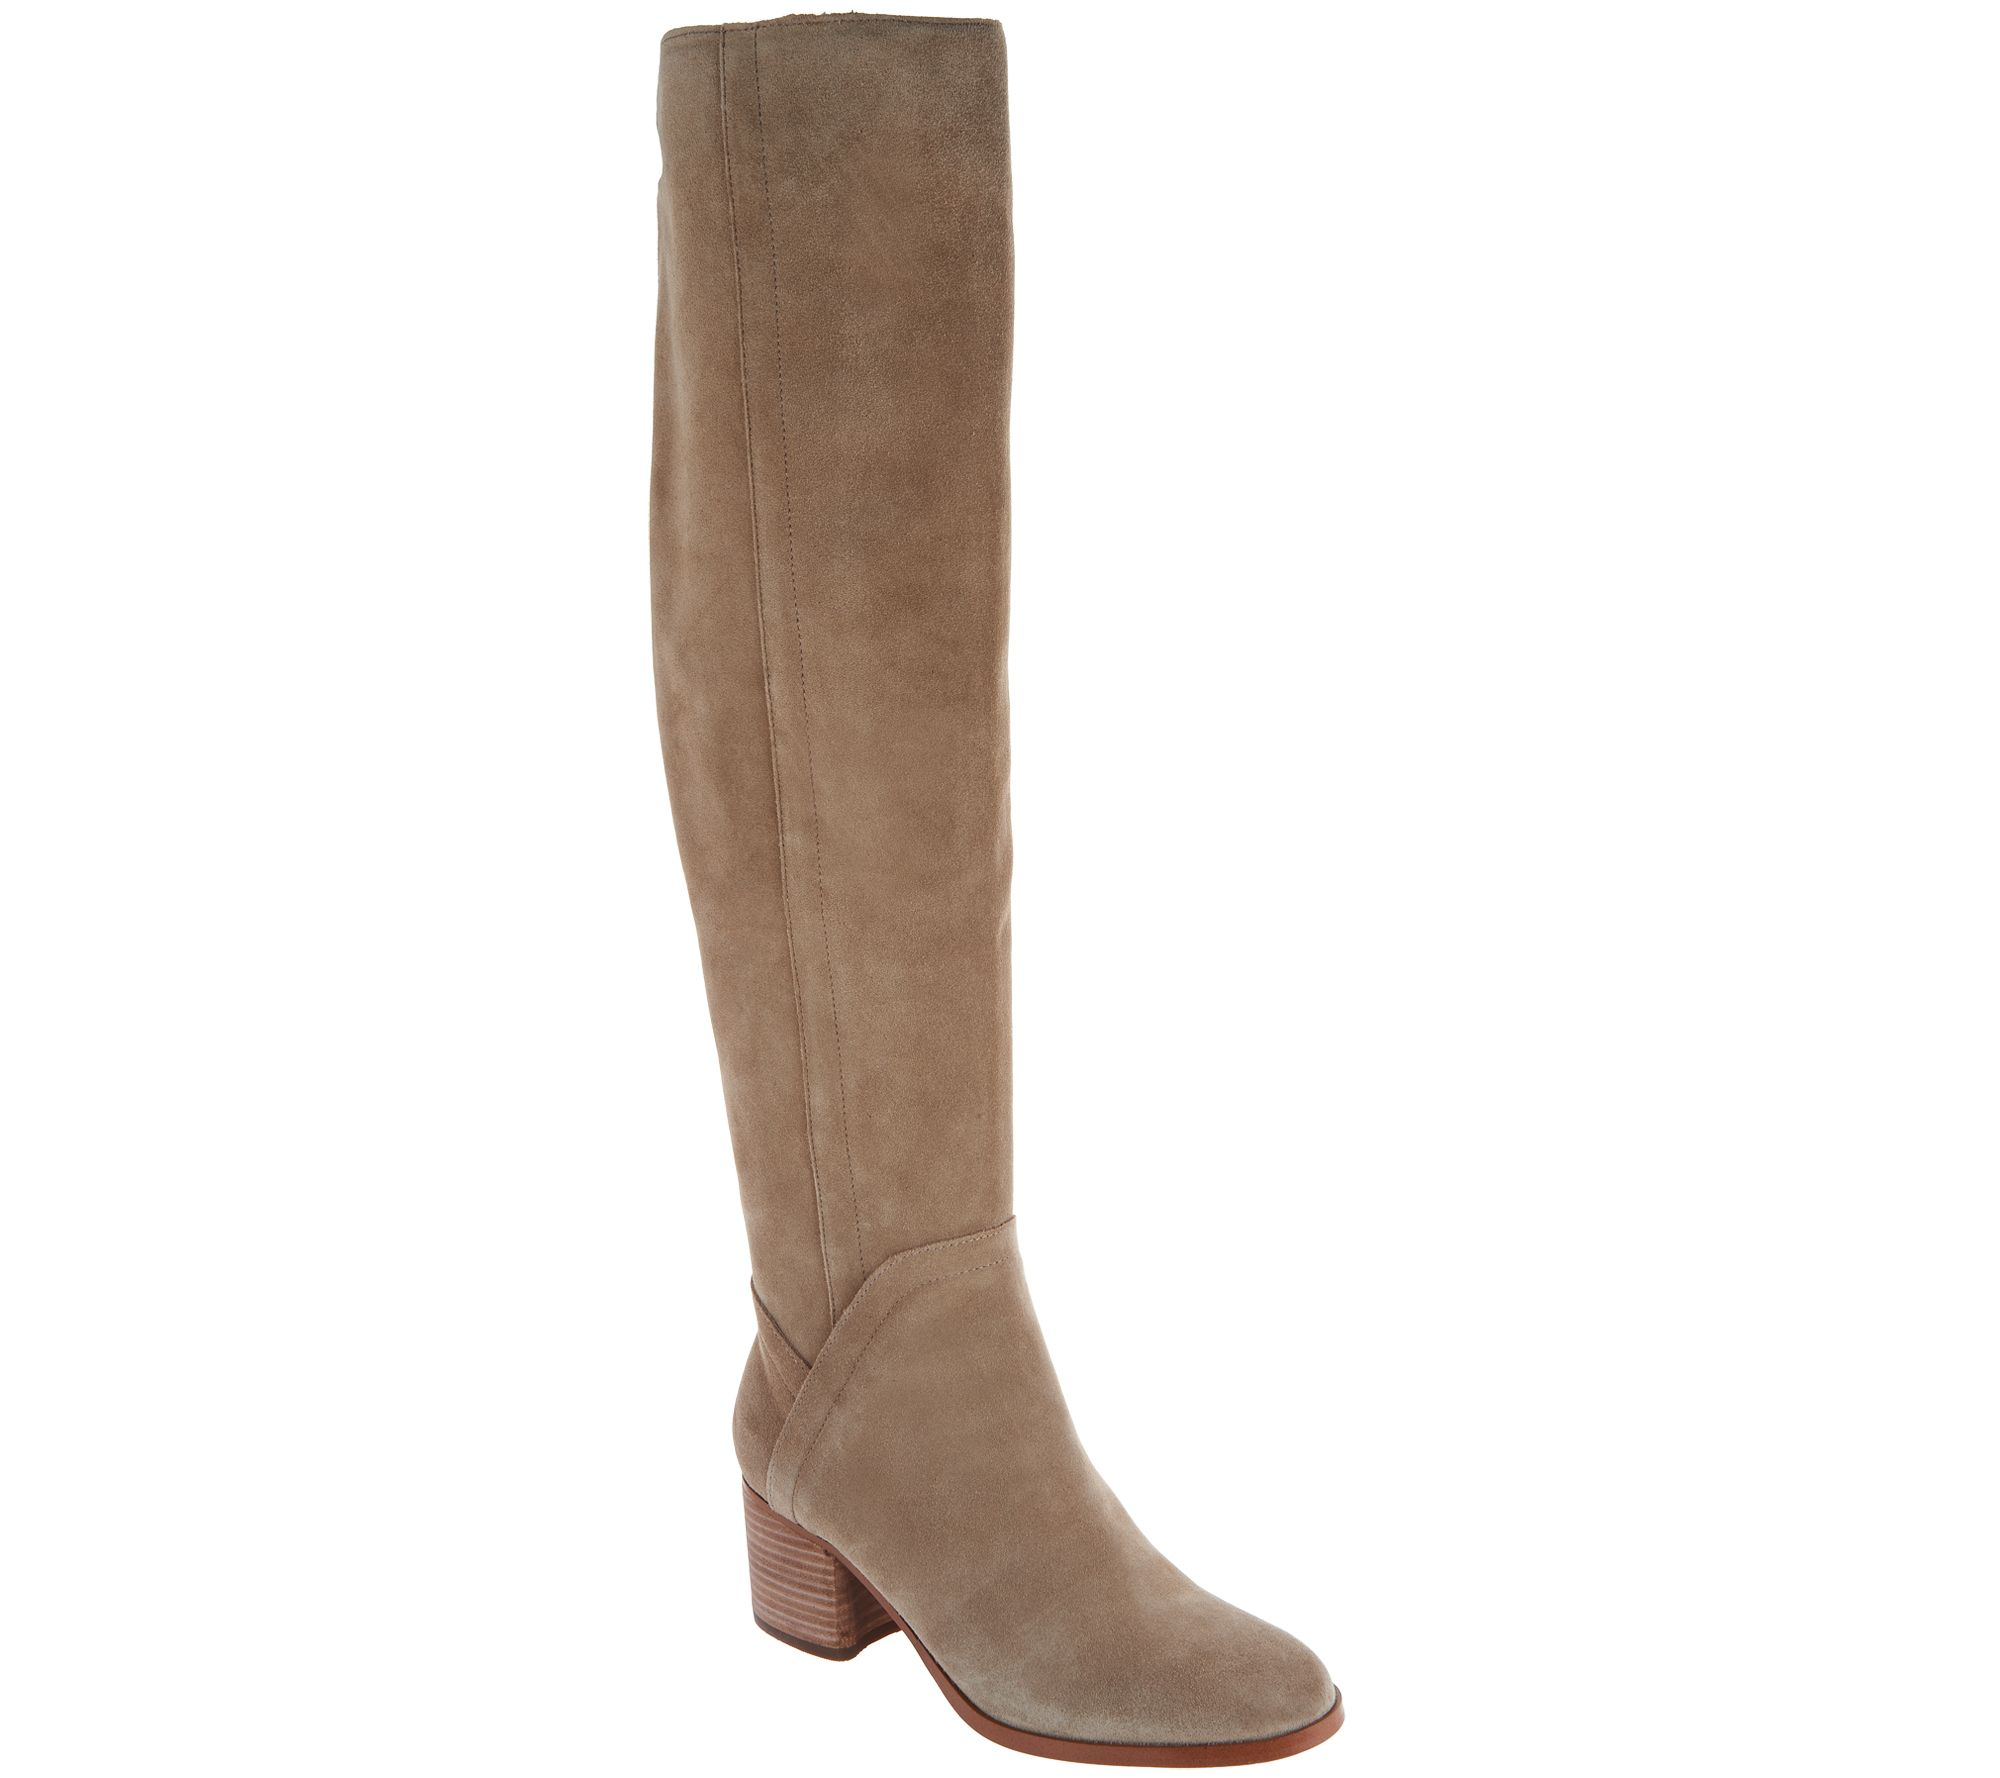 010673d4a2f Marc Fisher Wide Calf Suede Over-the-Knee Boots - Elanie — QVC.com